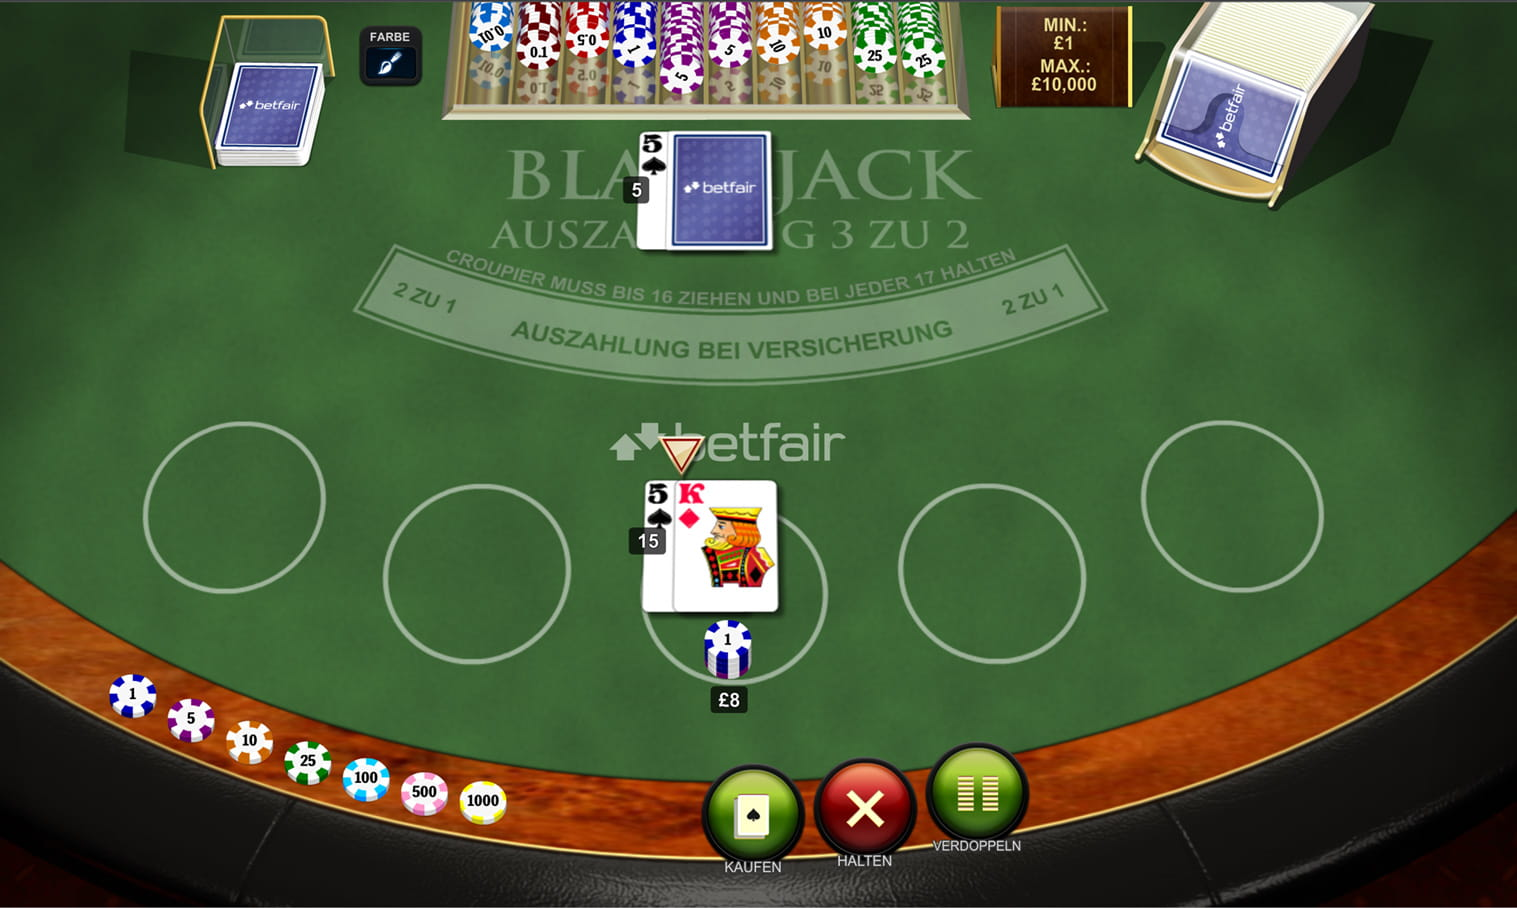 Betfair exchange blackjack bot